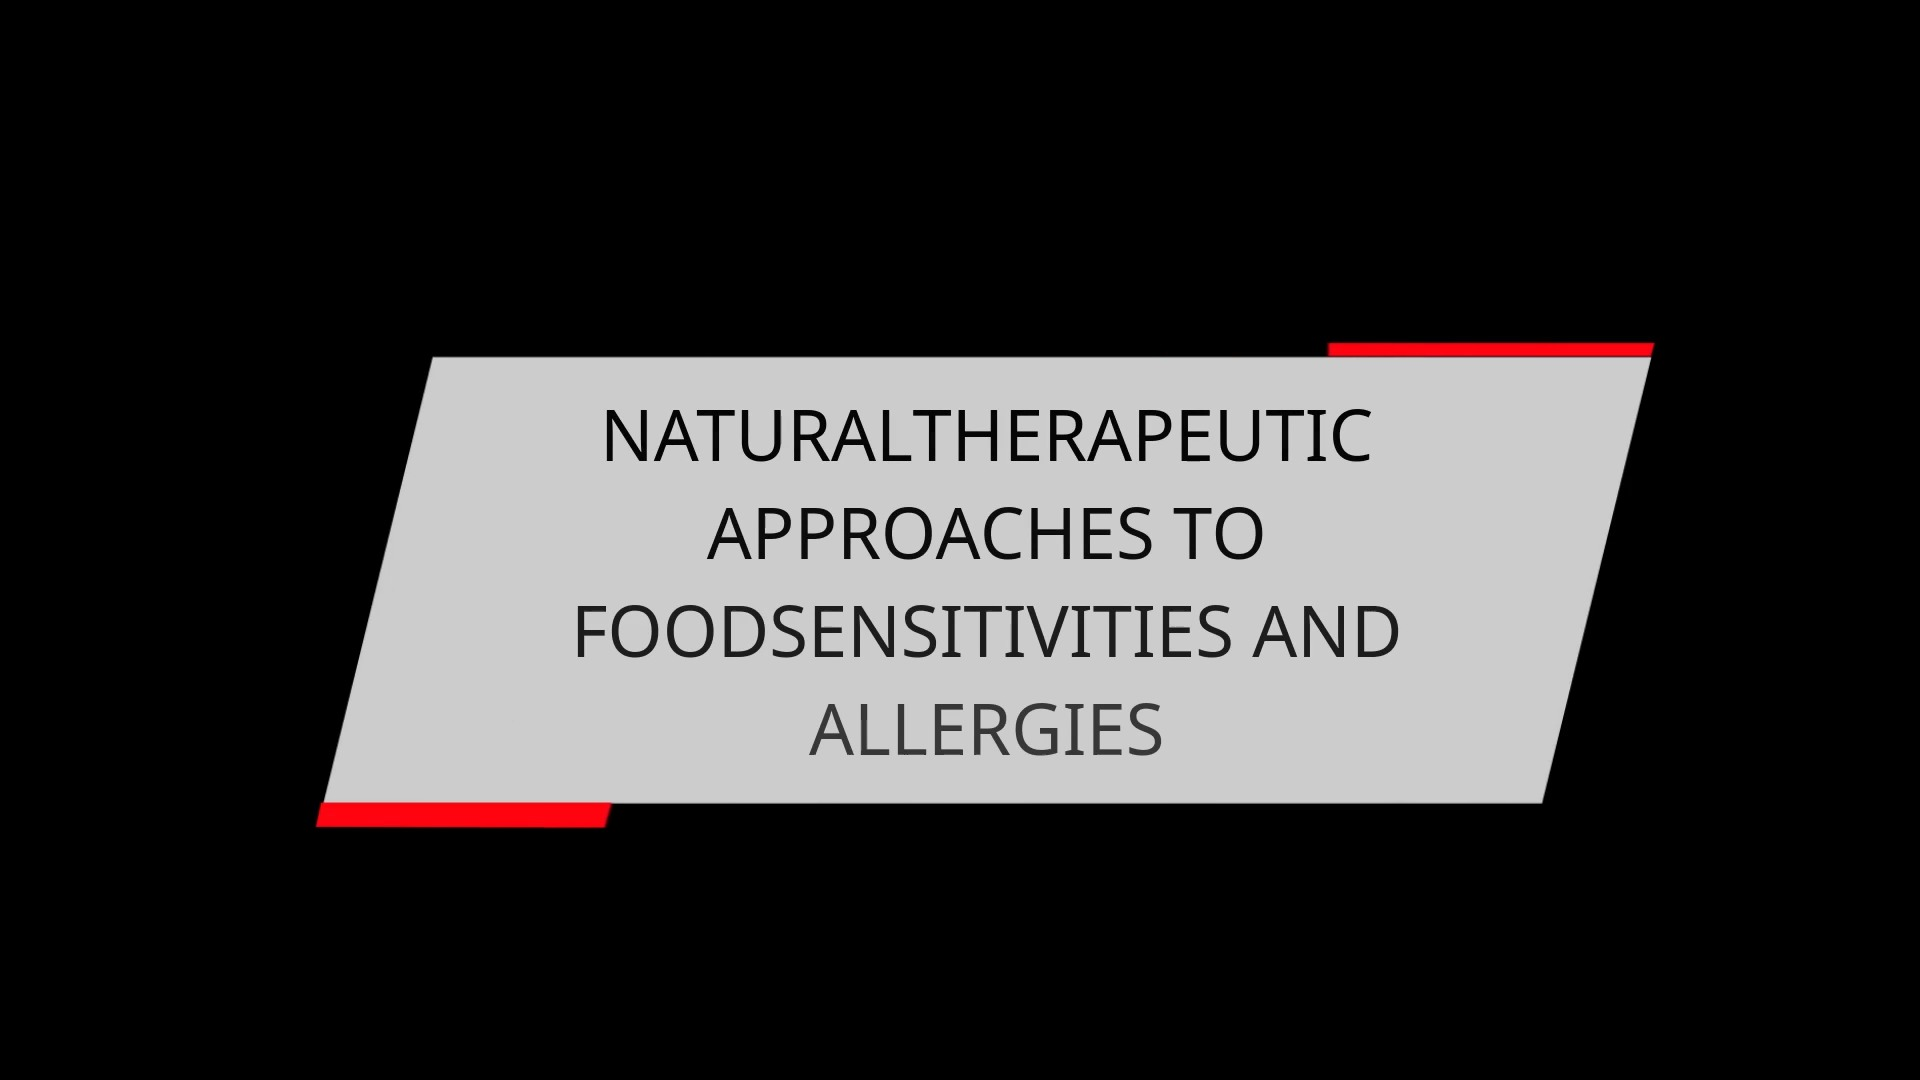 NATURAL THERAPEUTIC APPROACHES TO FOOD SENSITIVITIES AND ALLERGIES